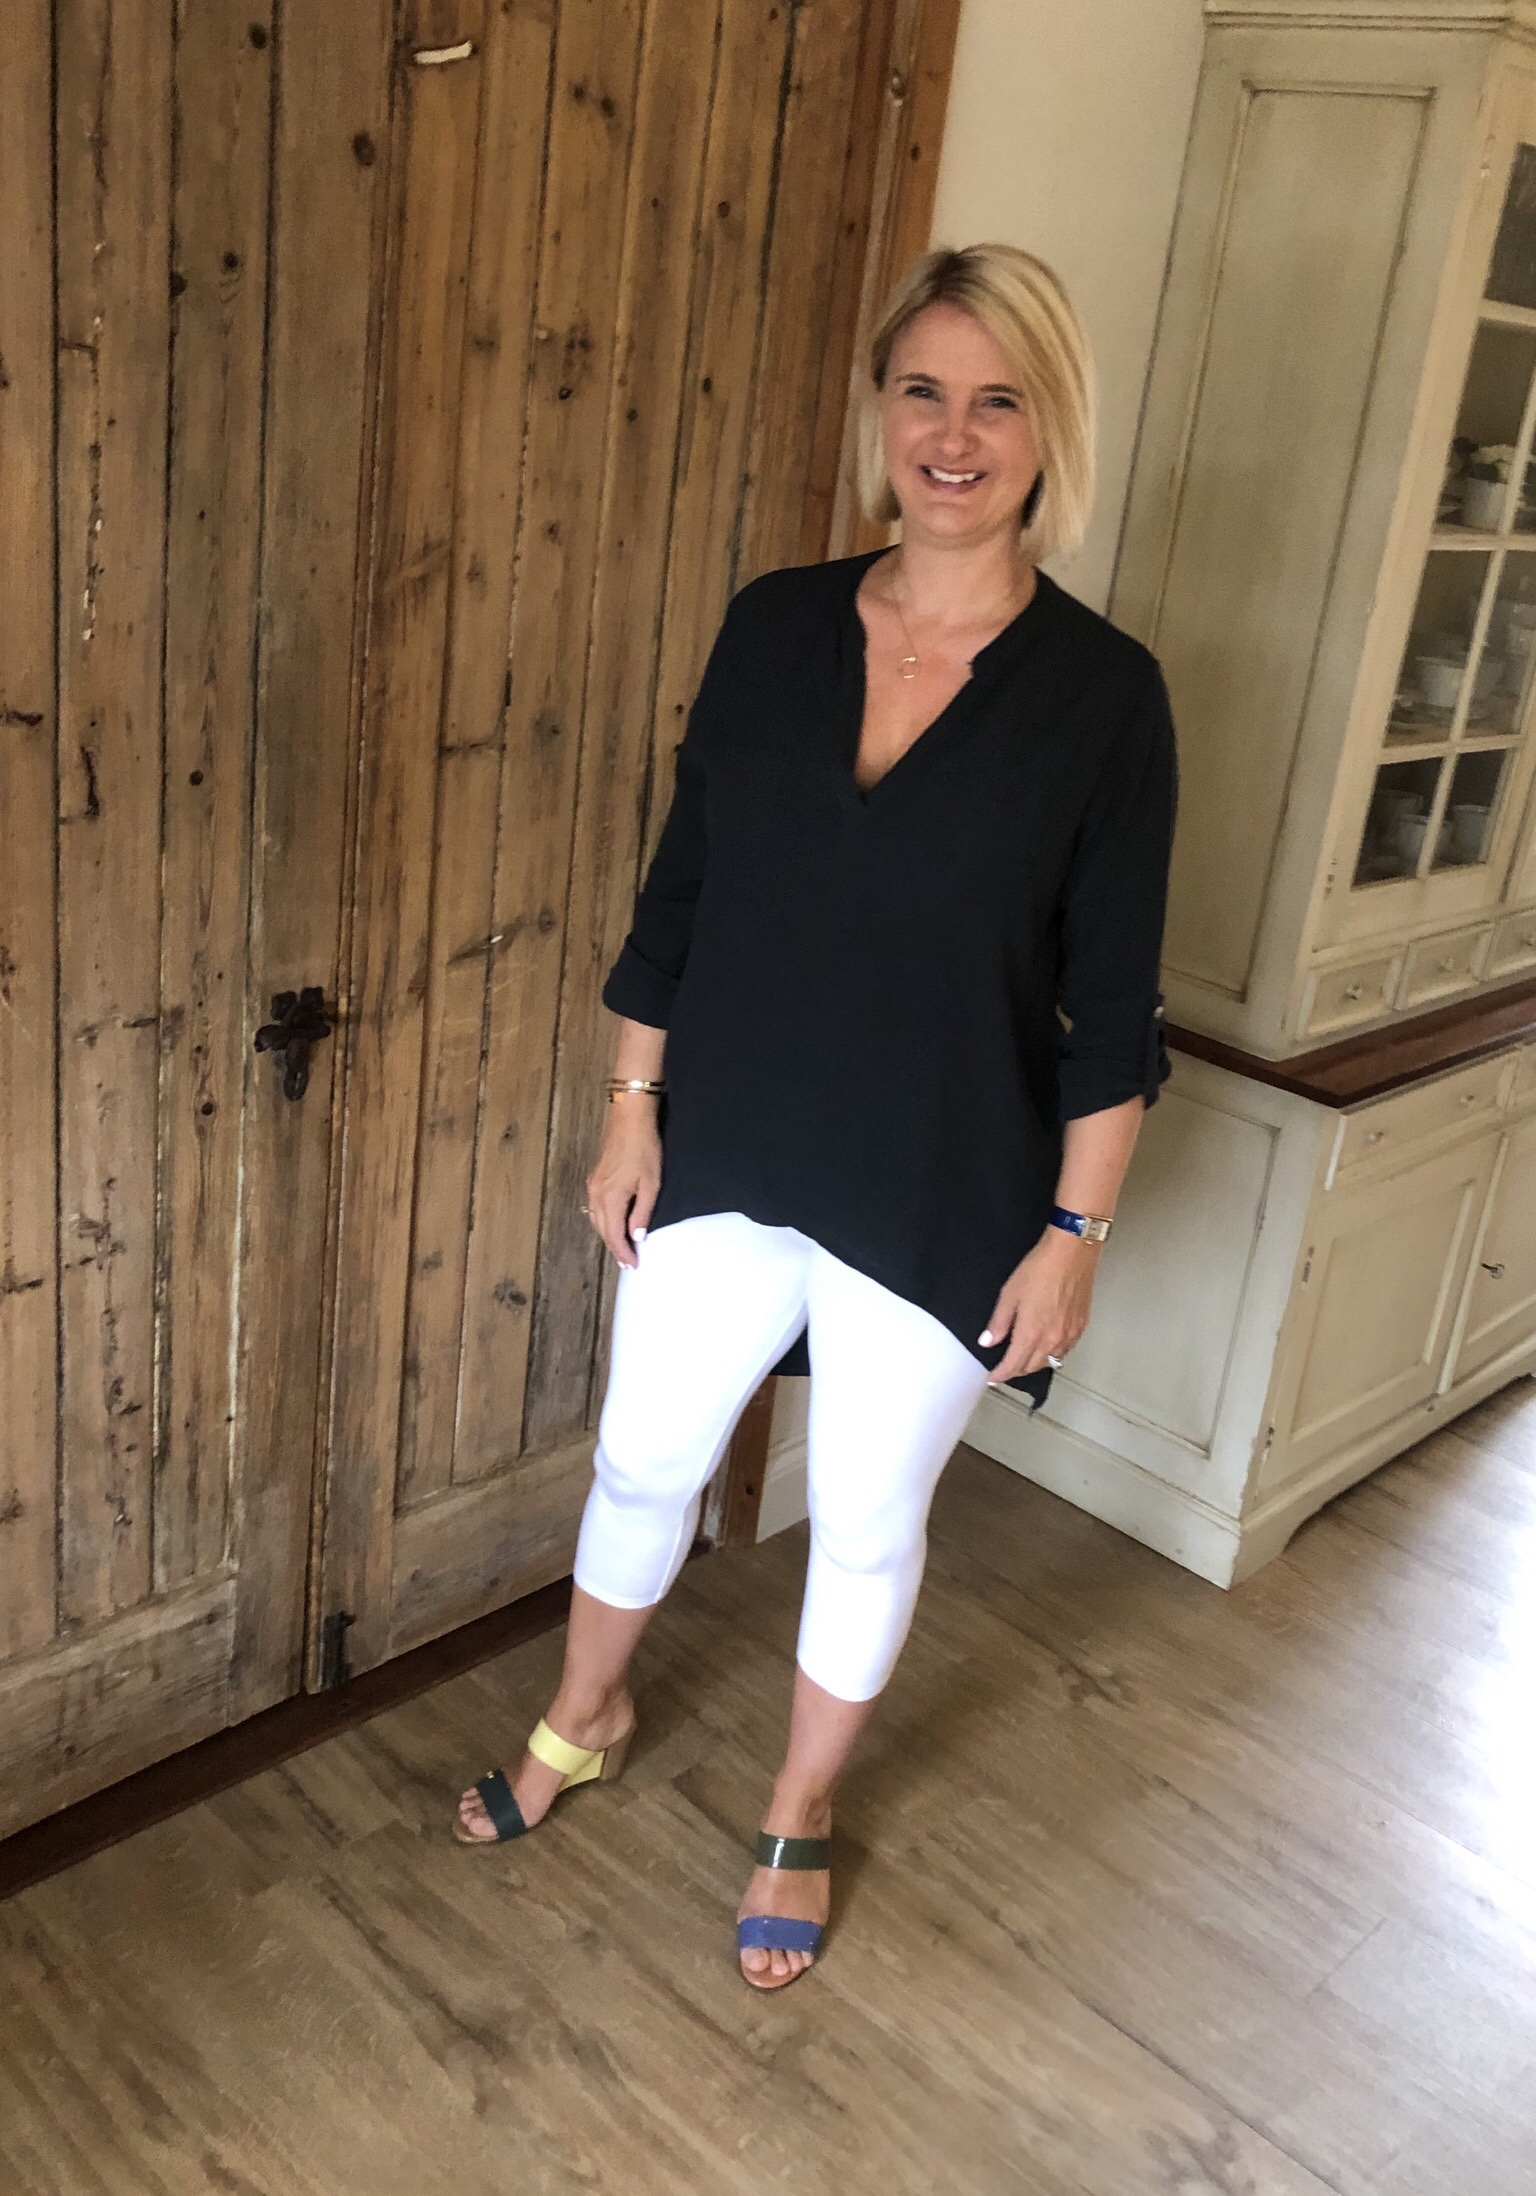 Top from TK Maxx, Leggings from Next, Shoes (both pairs) from Fendi (in the name of doing just as I please, I mixed and matched both pairs of shoes).